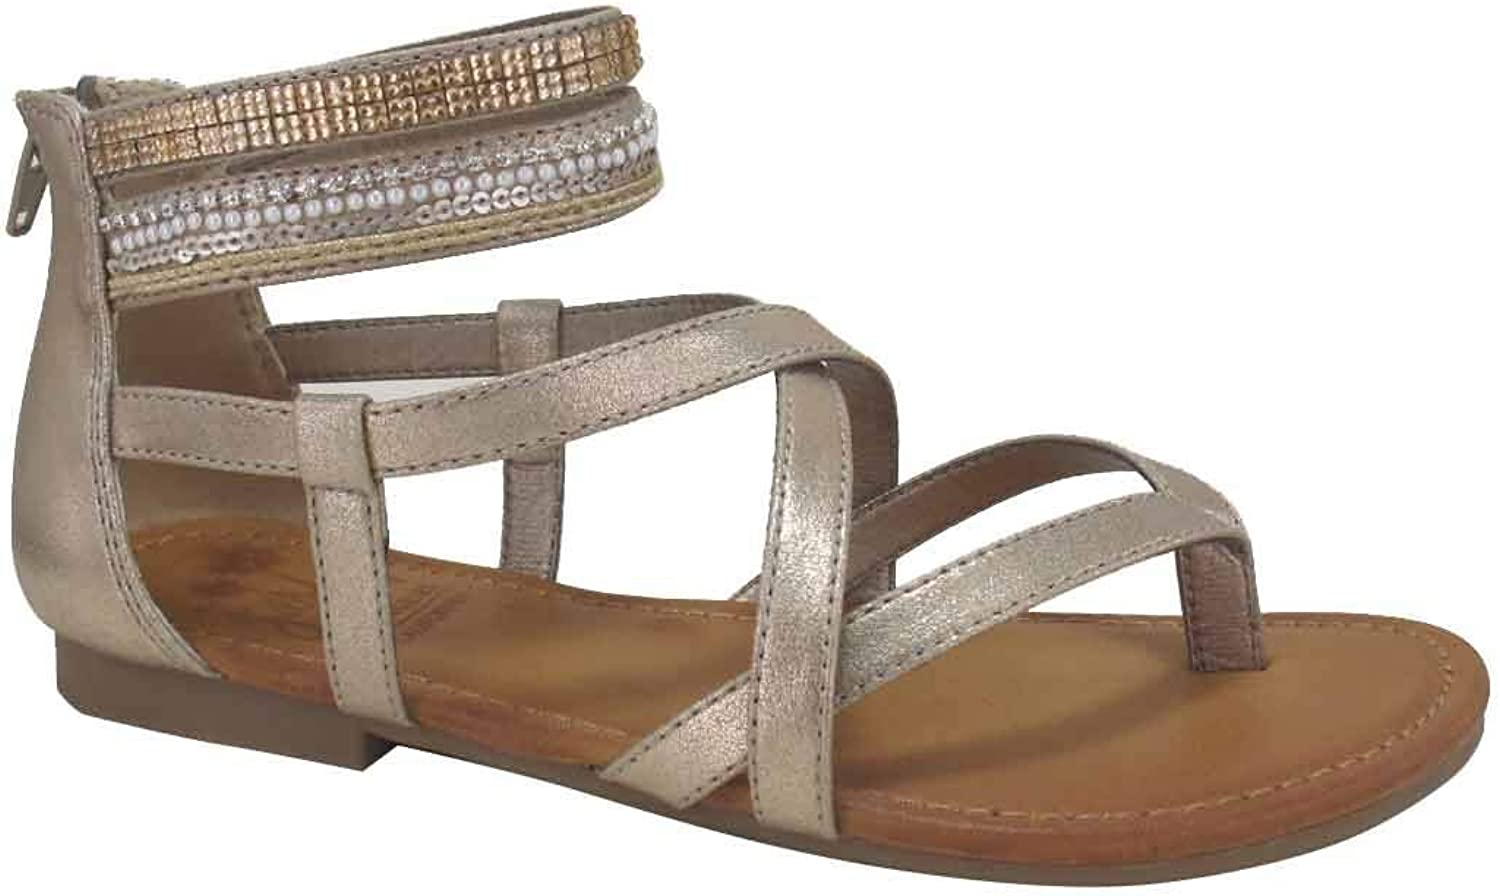 jelly pop sandals